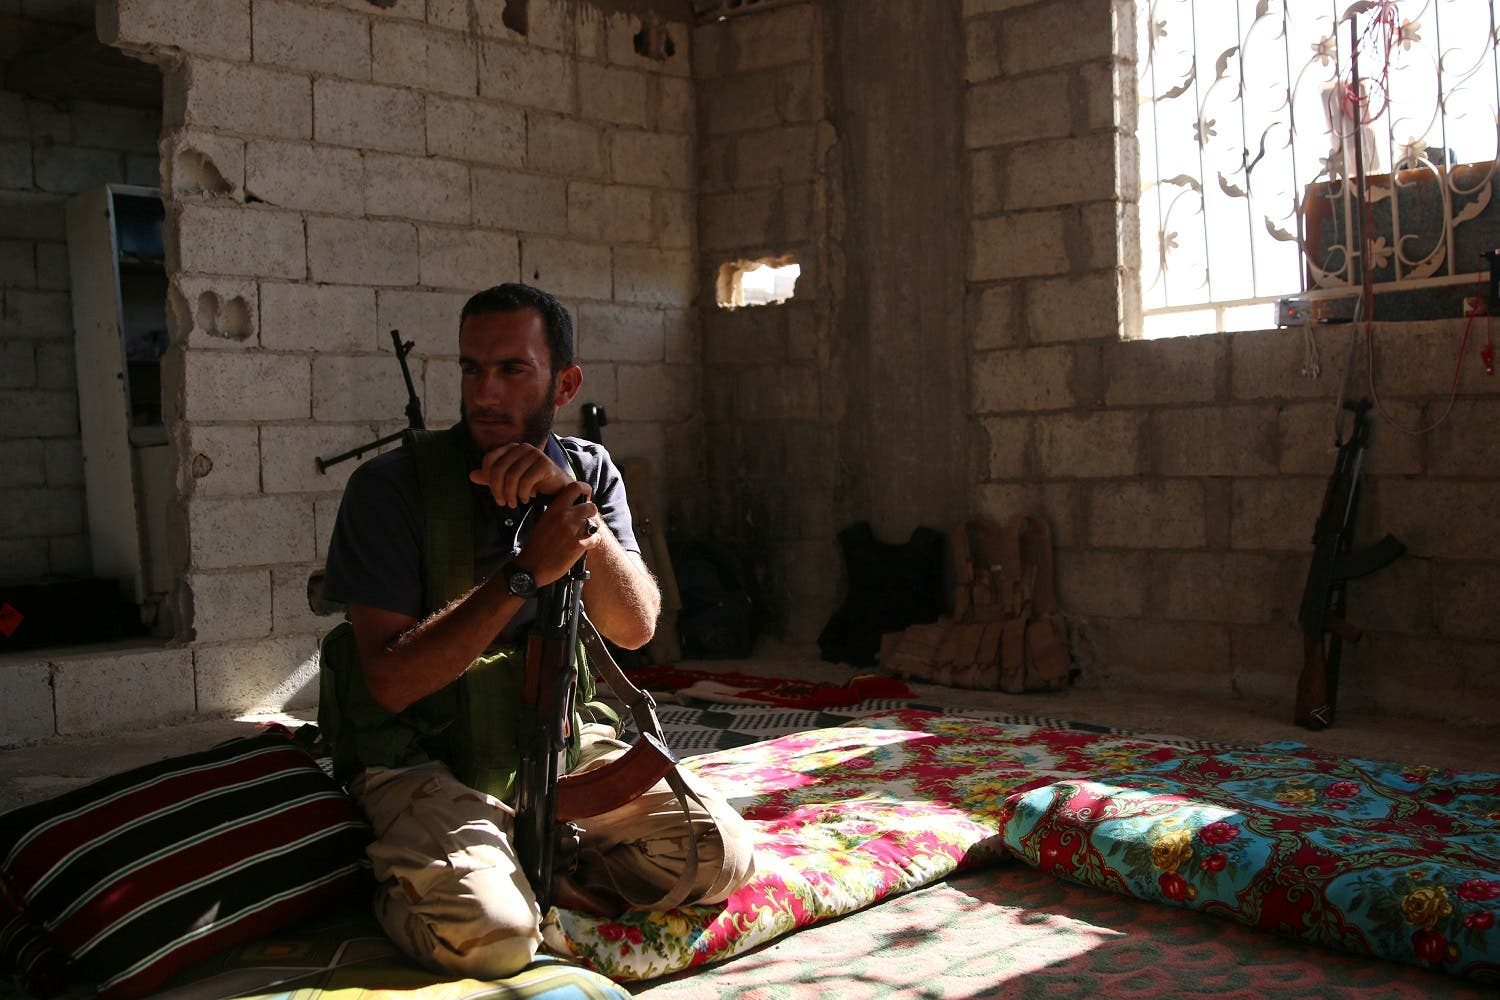 A Free Syrian Army fighter holds his weapon inside a house in rebel-held Al-Yadudah village, in Deraa Governorate, Syria, July 19, 2017. (Reuters)